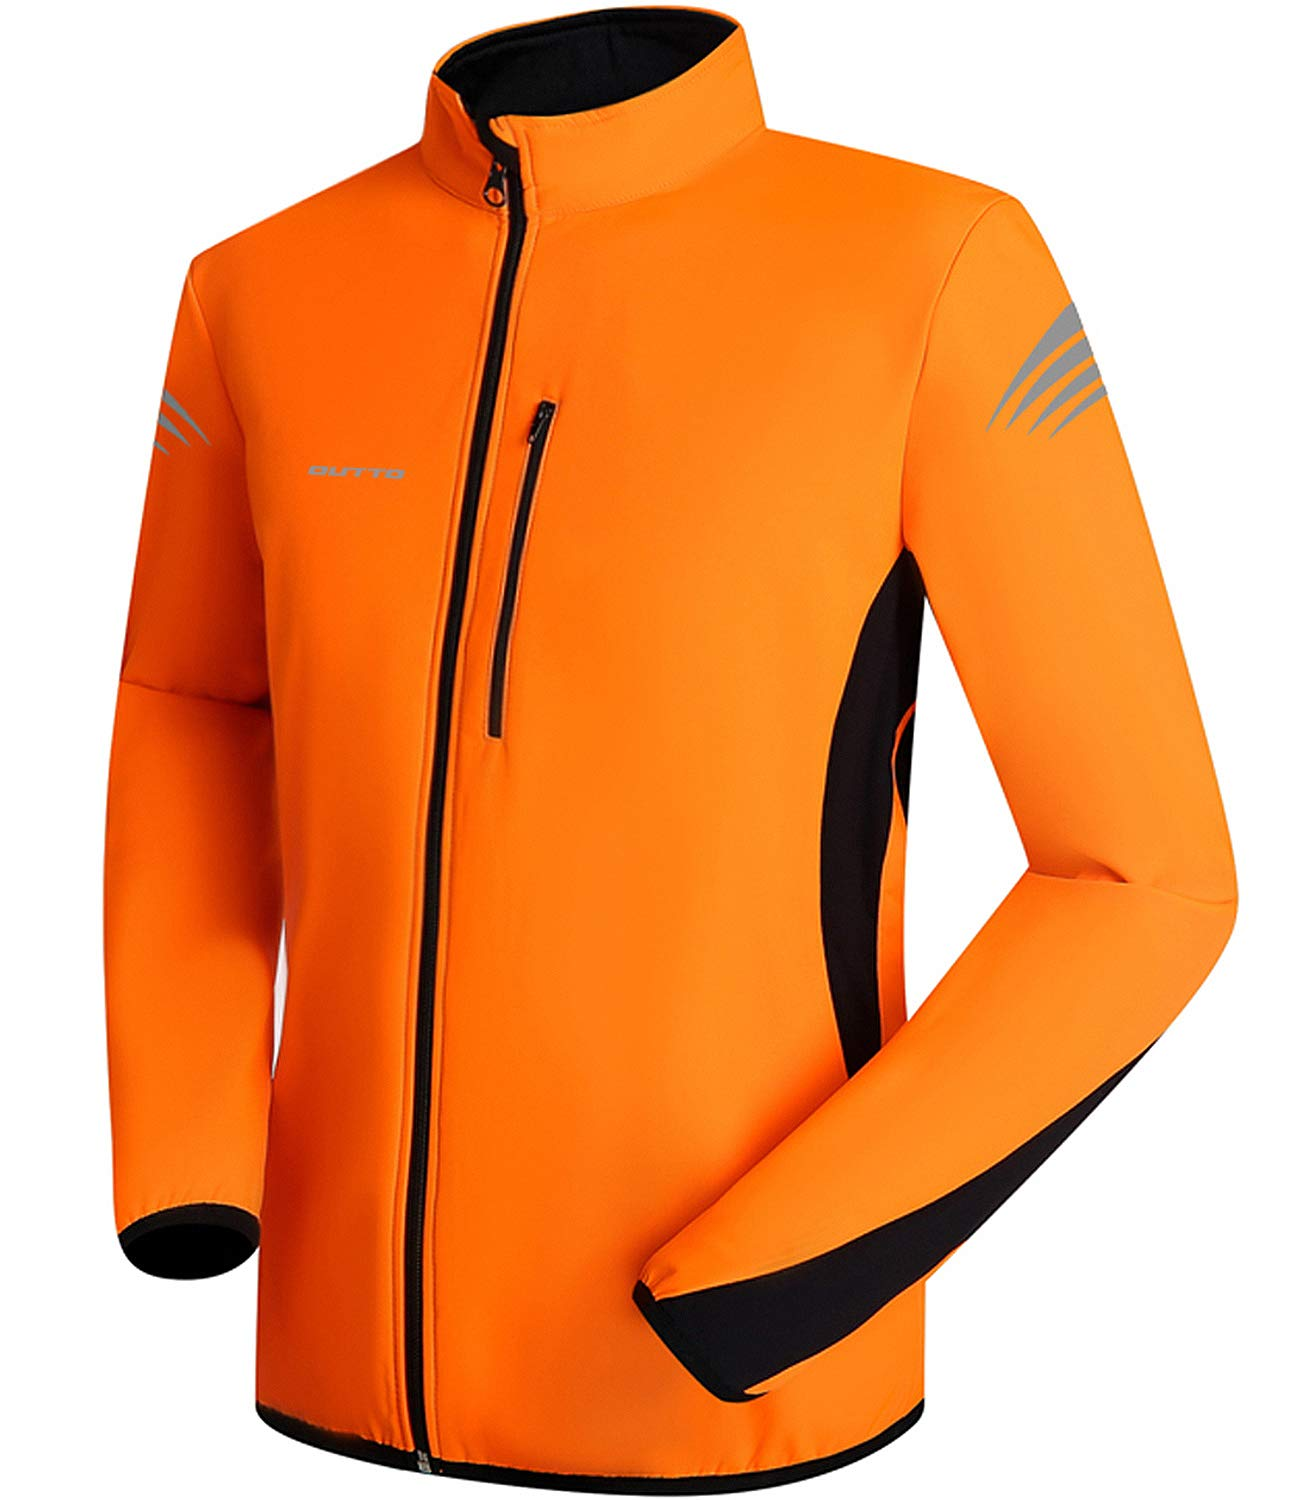 OUTTO Men's Winter Thermal Cycling Jacket Reflective Water Resistant Windbreaker(Large, Orange) by OUTTO